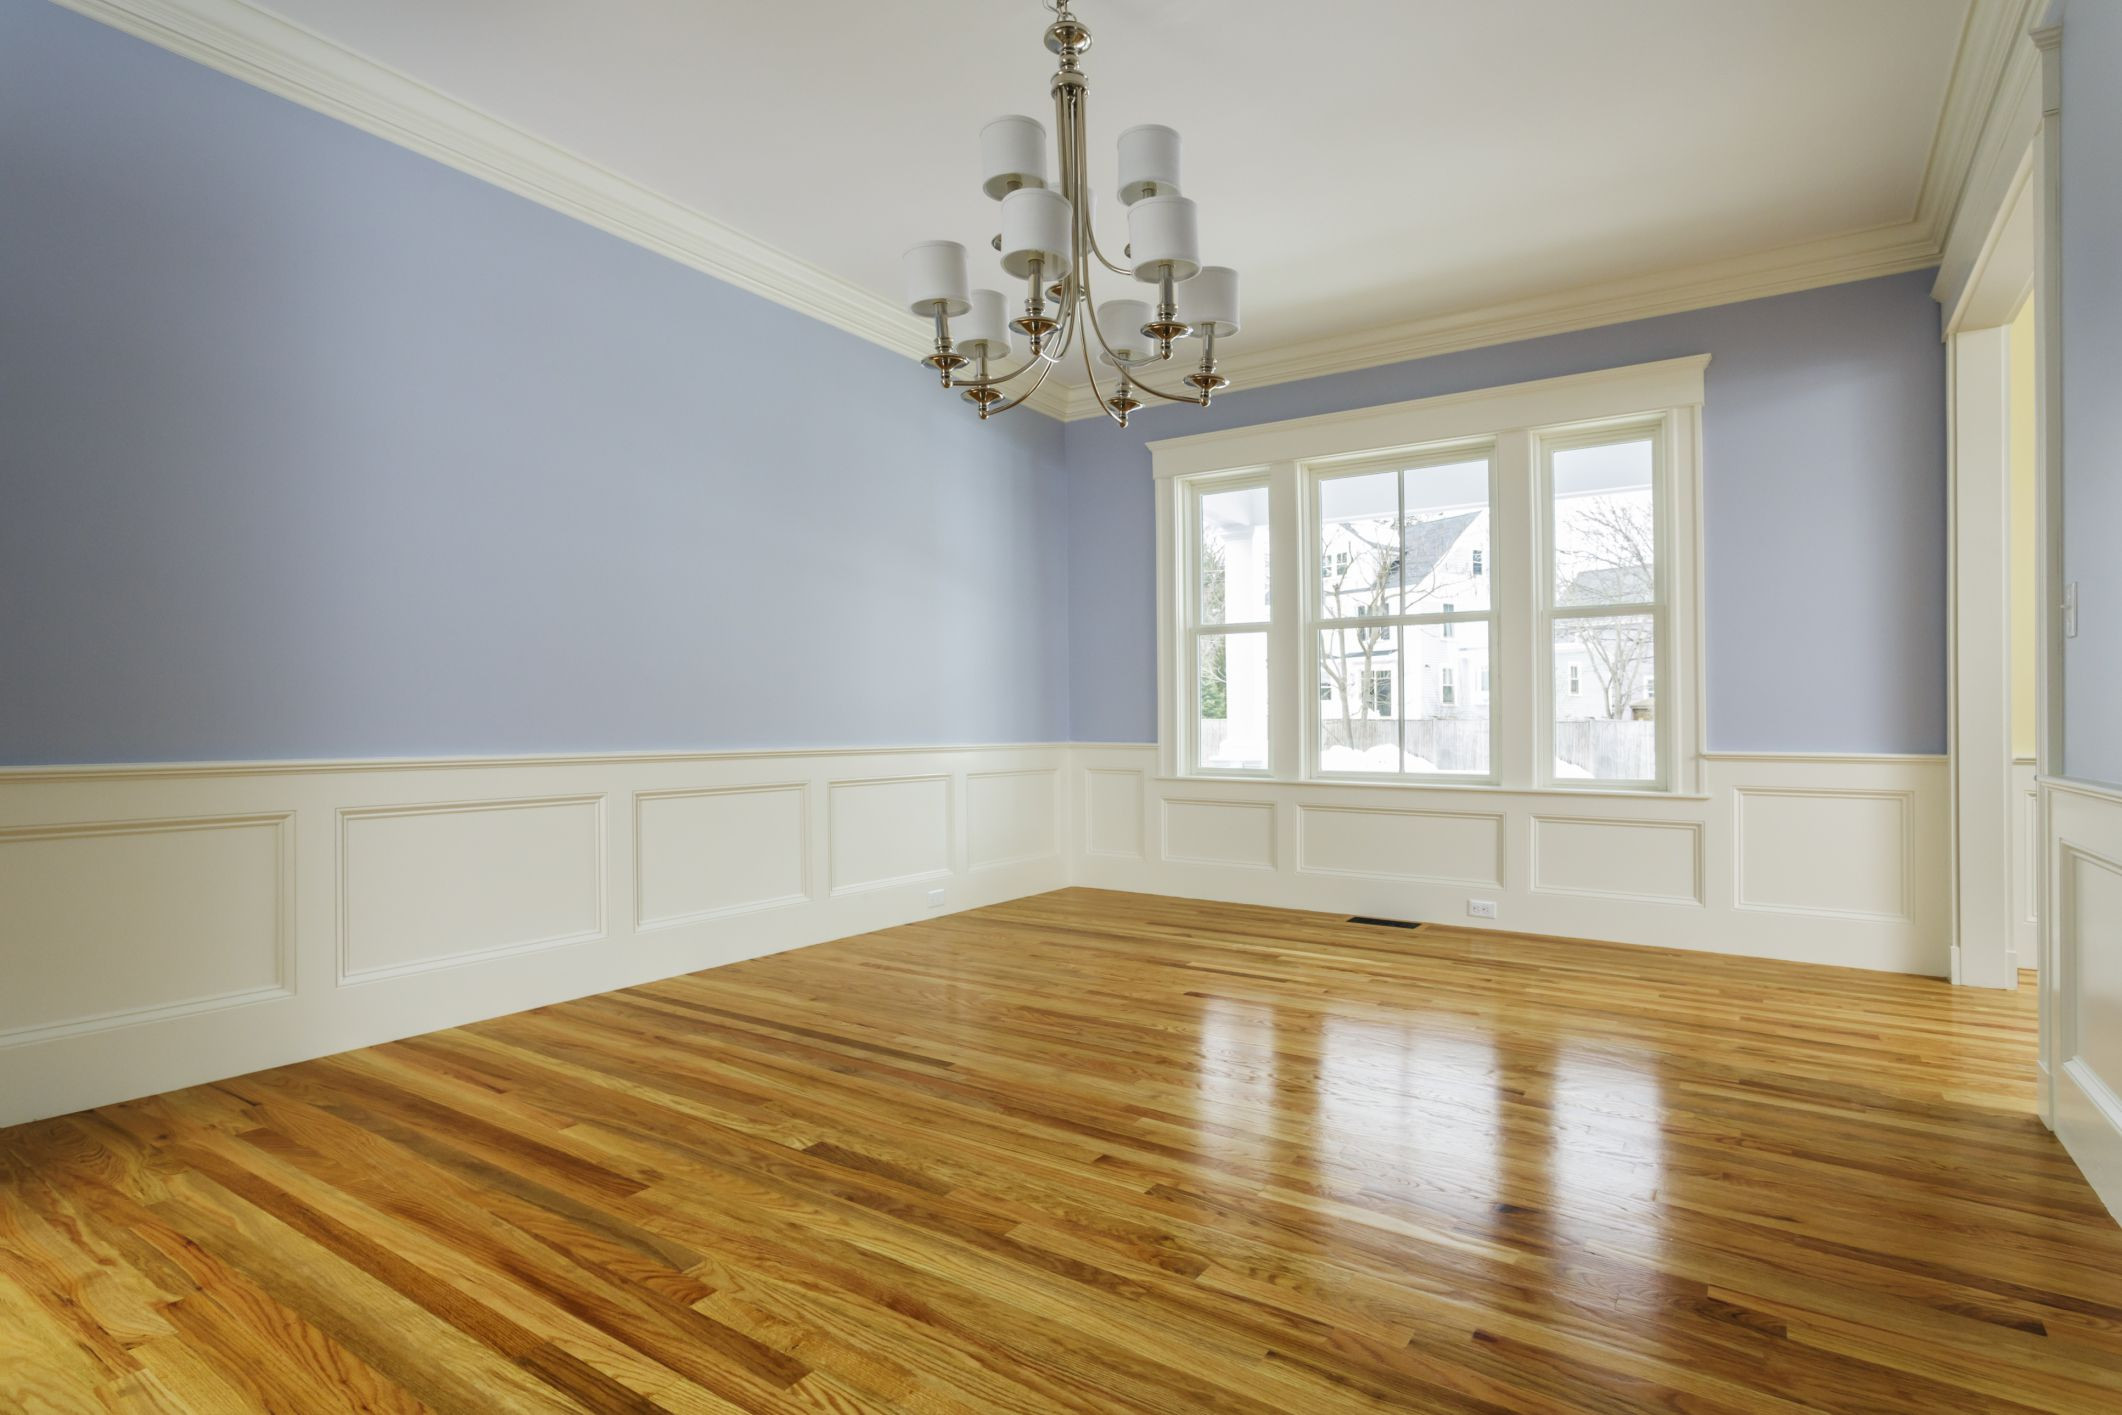 hardwood floor restoration products of how to make hardwood floors shiny intended for 168686572 56a4e87c3df78cf7728544a2